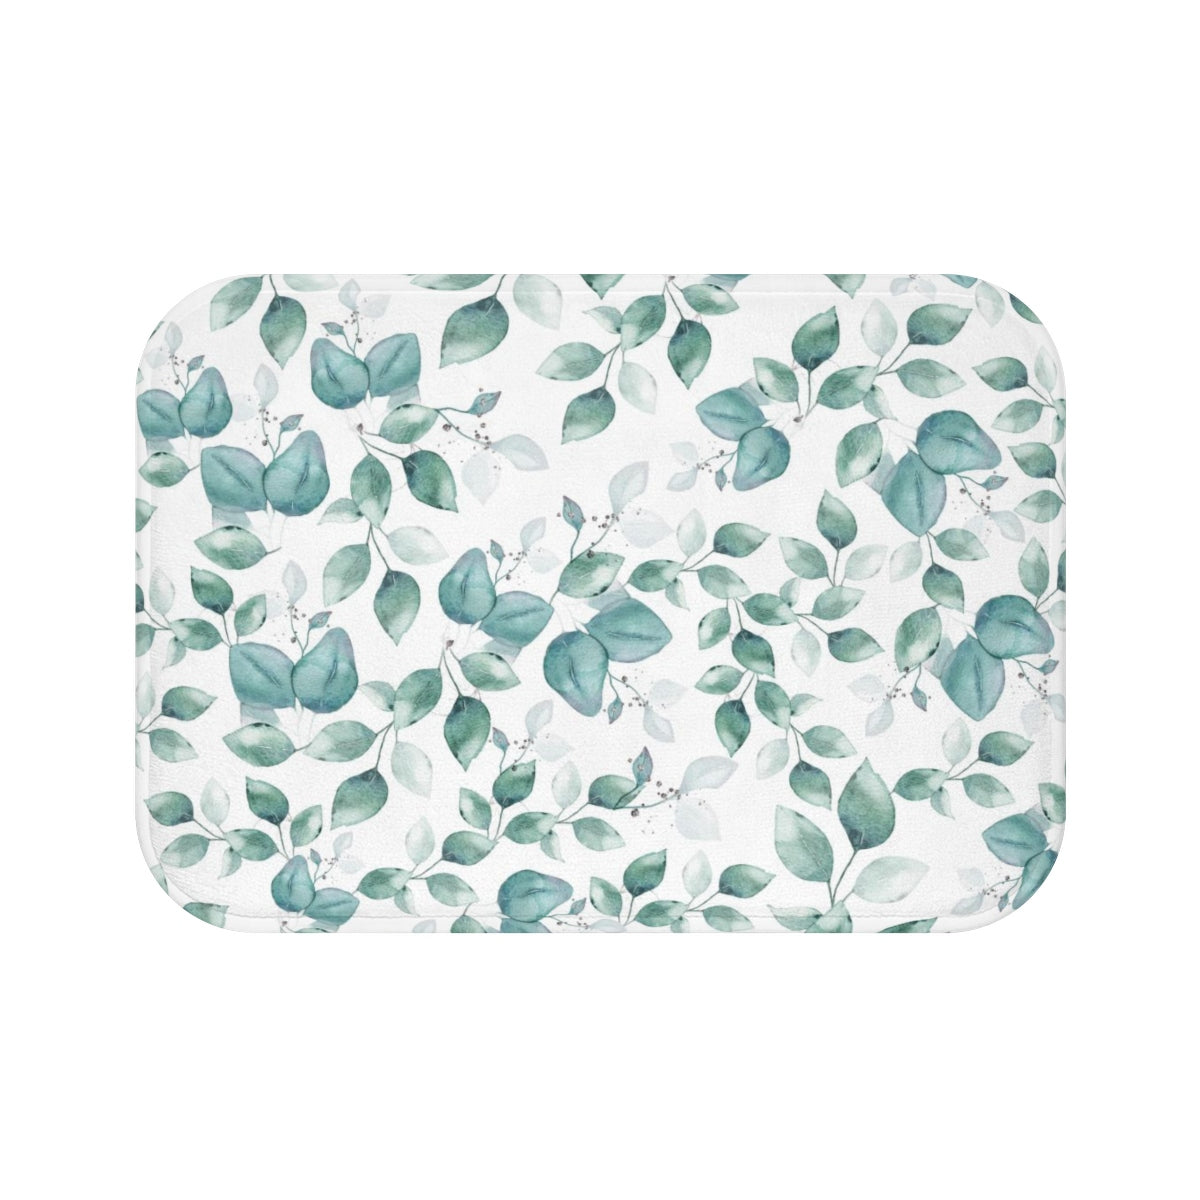 Light Blue Bath Mat - Liz Kapiloto Art & Design